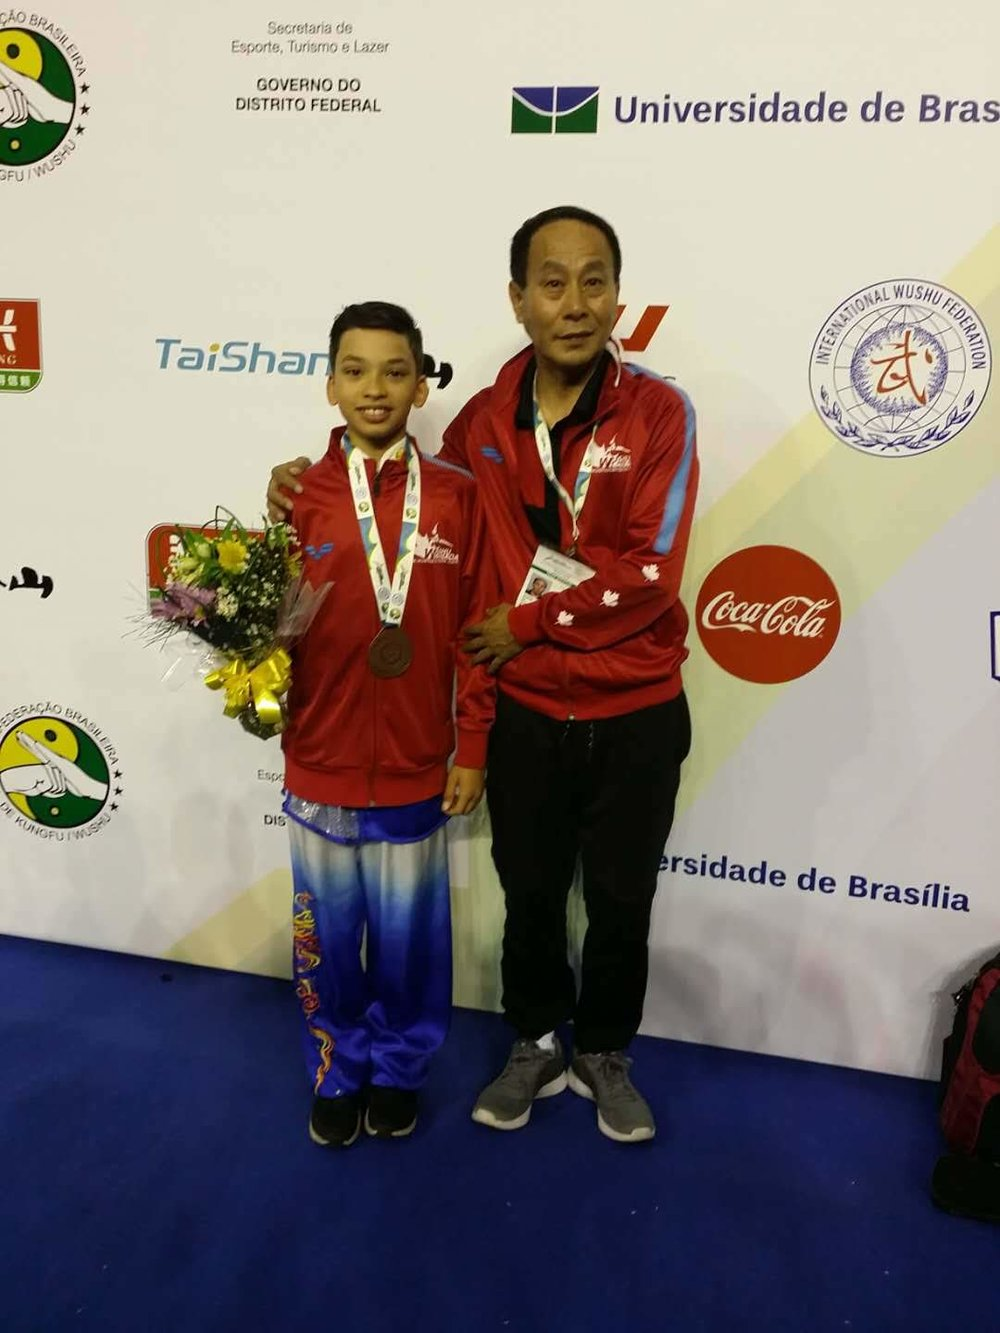 wayland-li-wushu-world-junior-wushu-brazil-team-canada-2018-05.jpg